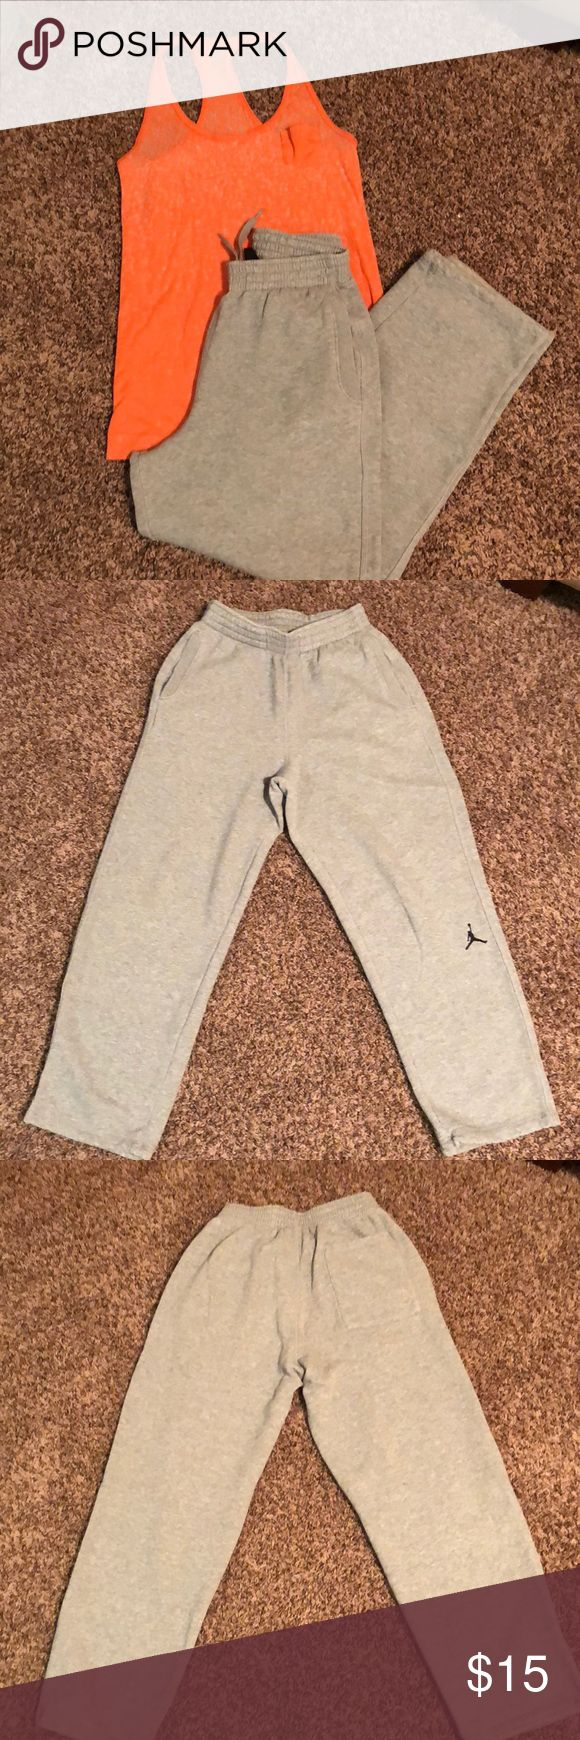 Nike Air Jordan Sweats Nike Air Jordan Heather Gray Sweats  ( men's SMALL ) fits like a woman's Medium  . I bought these to dance in years ago but they were a bit to thick and heavy. They are amazing for keeping warm and lounging in but the waste band is pretty tight and after babies and surgery's  I need a loose waste band. There is no signs of wear except they used to have elastic pull ties to tighten the  ankles & I took them out.  If you like sweats and you don't mind a tighter waste…